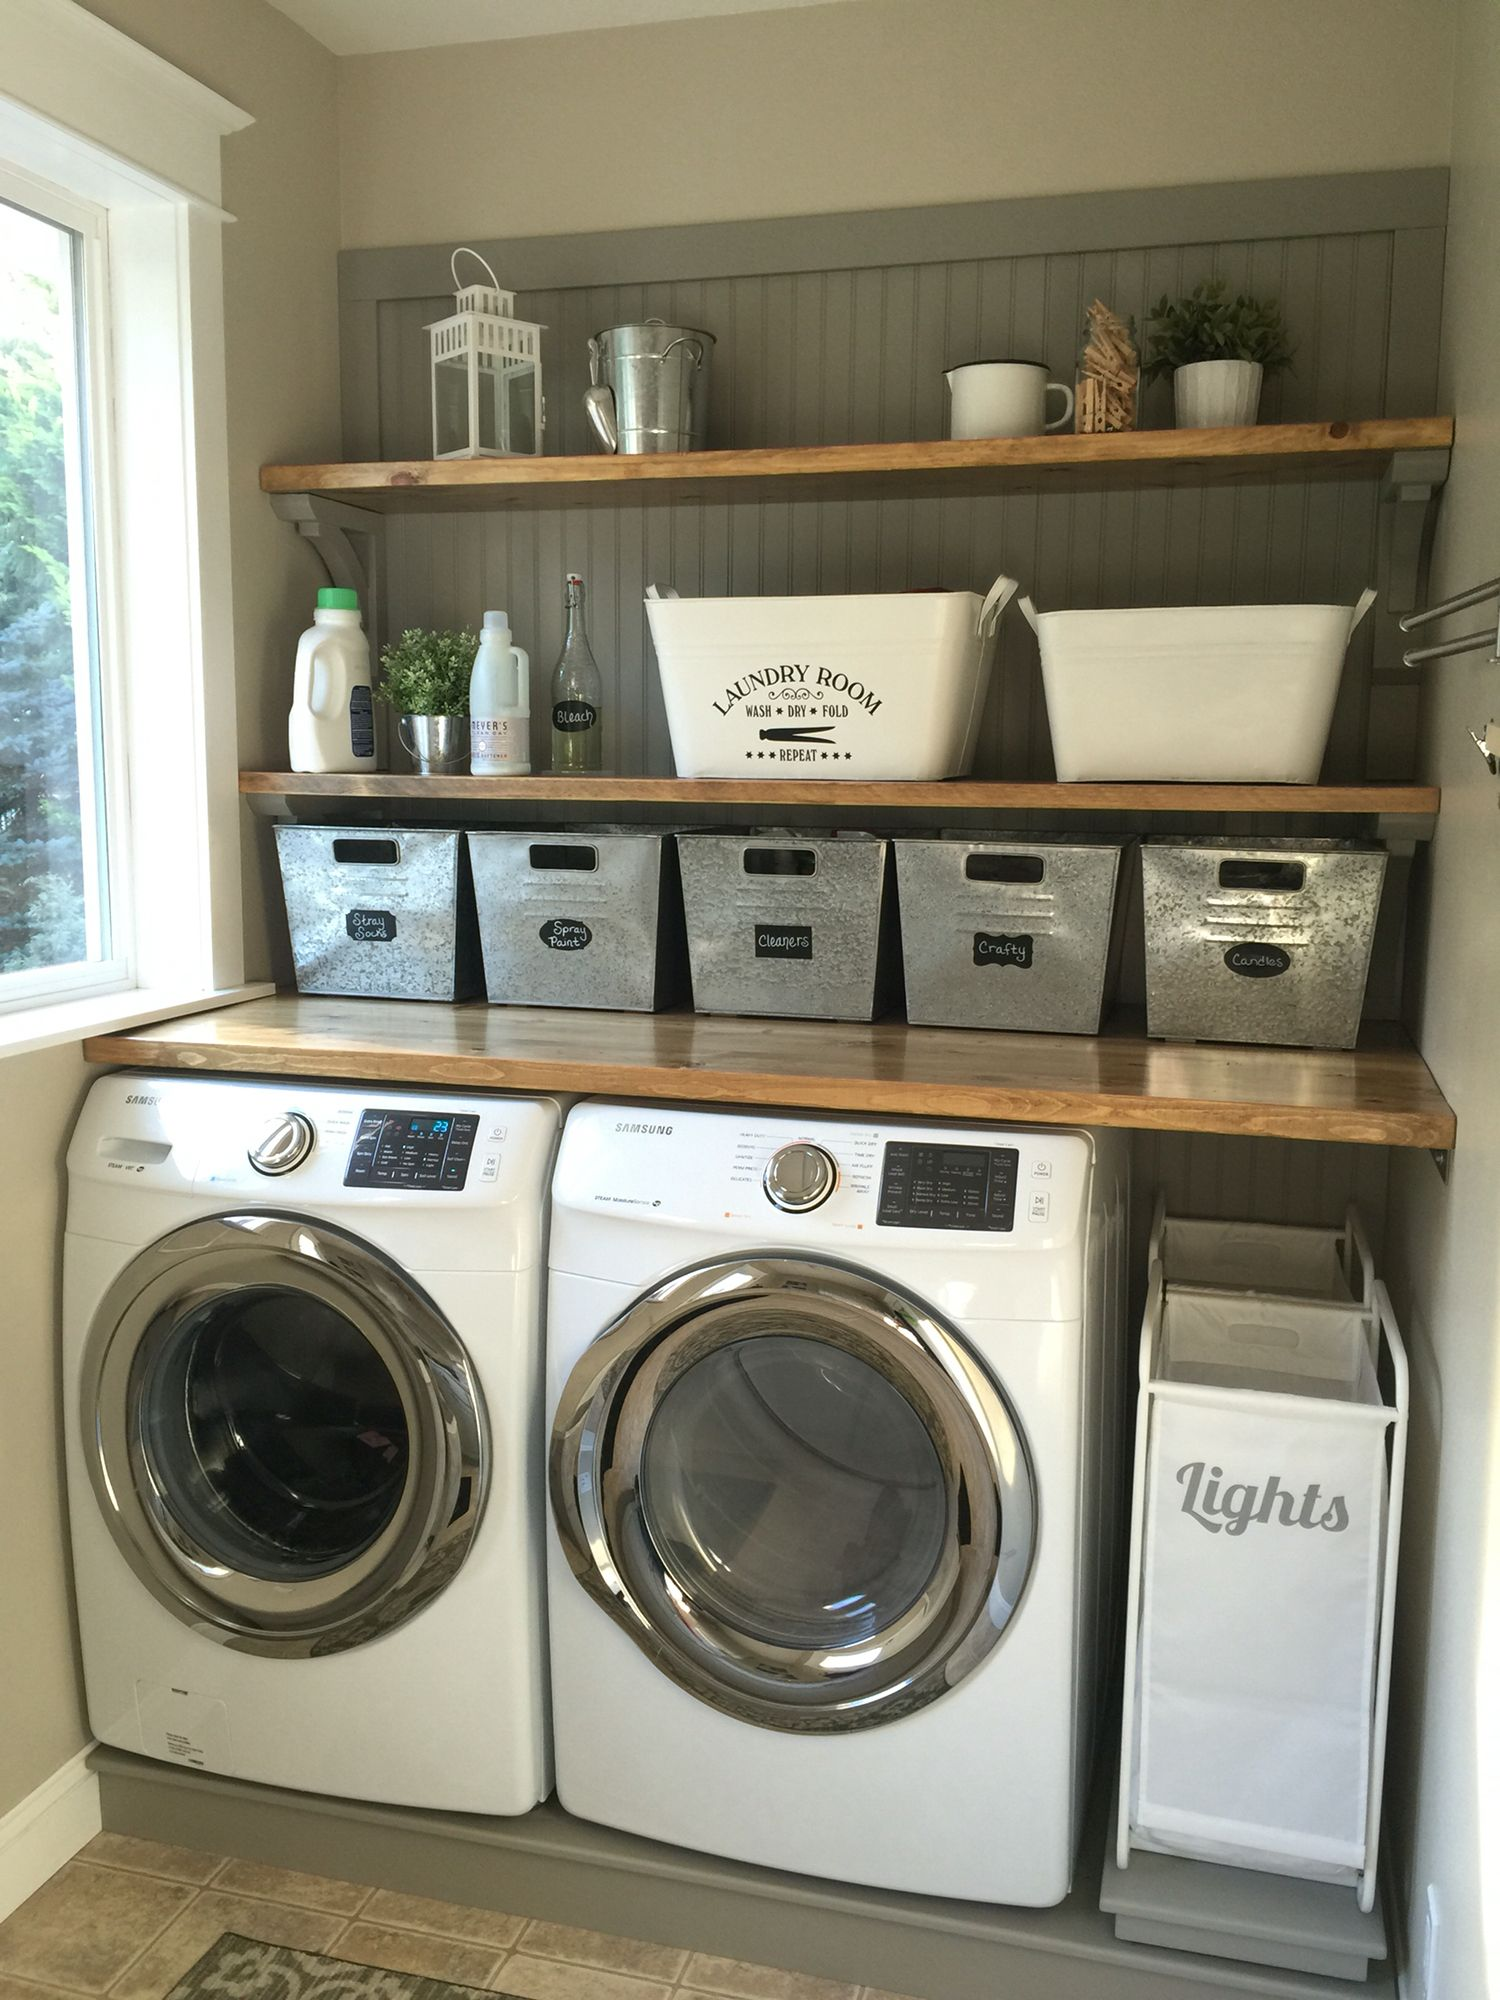 Laundry Room Ideas - Laundry room makeover. Wood counters, Walmart tin  totes, pull